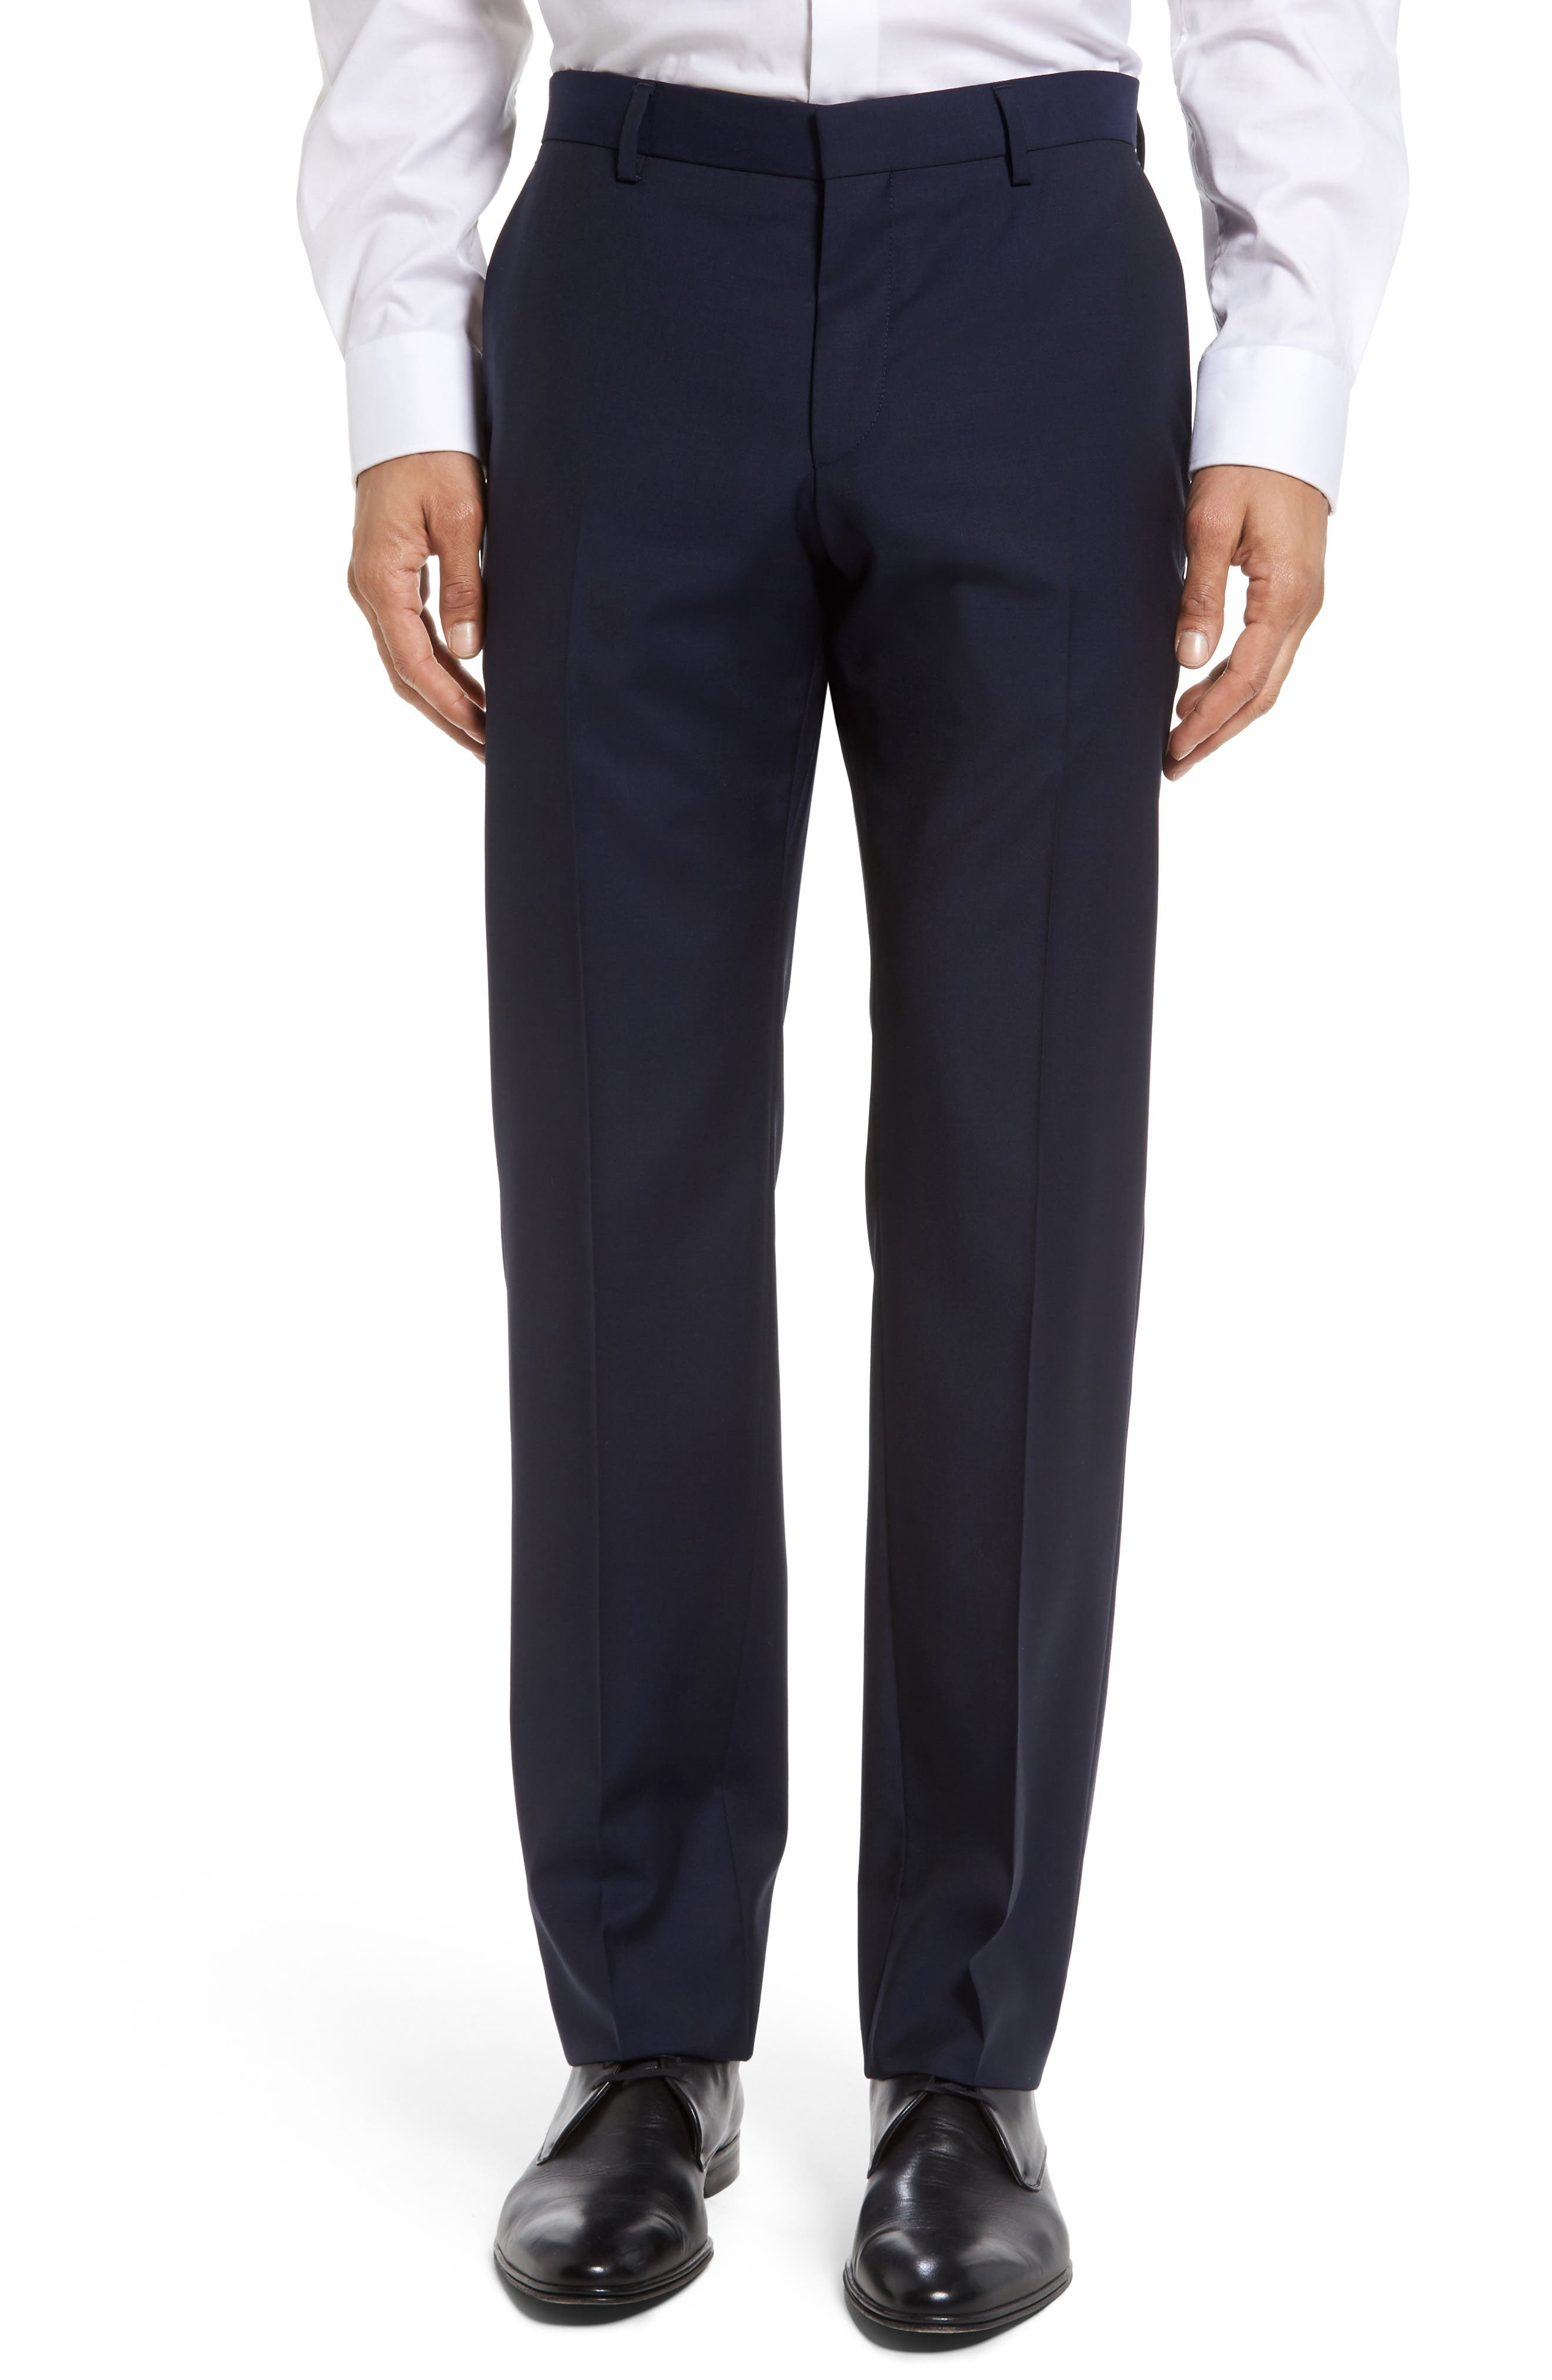 Genesis Flat Front Trim Fit Solid Wool Trousers,                             Main thumbnail 1, color,                             NAVY